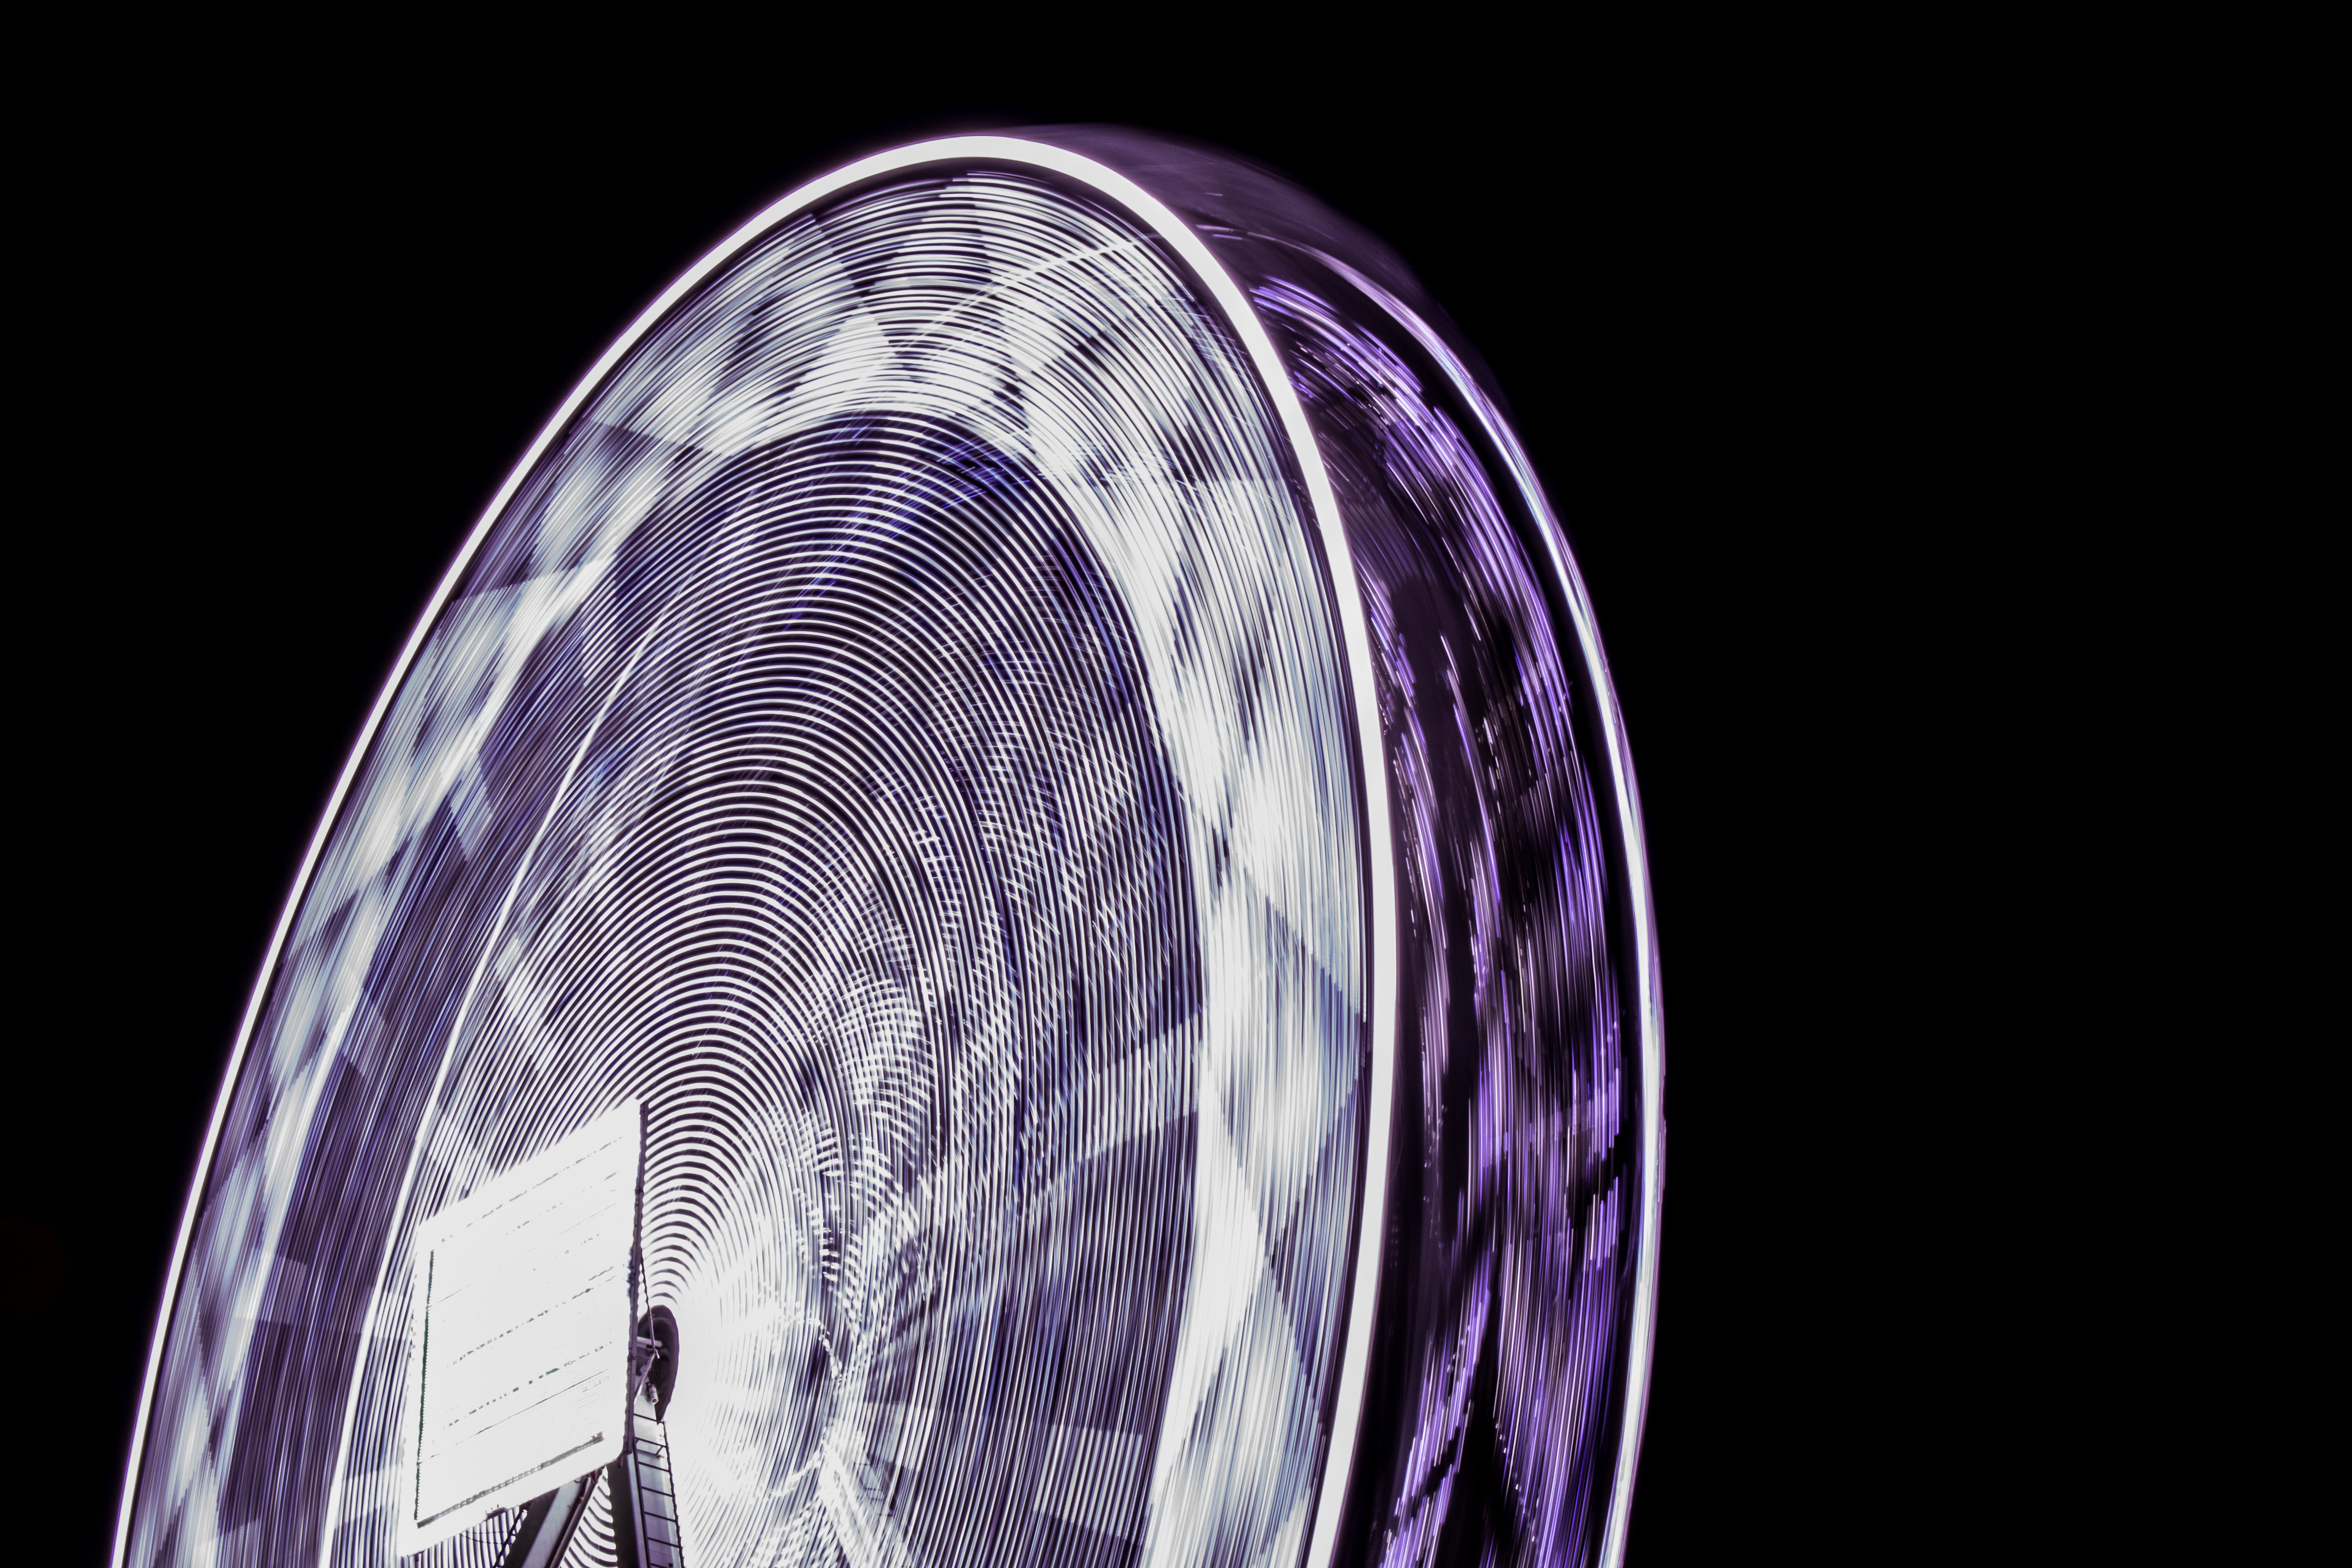 Free stock photo of night, speed, spinning, violet